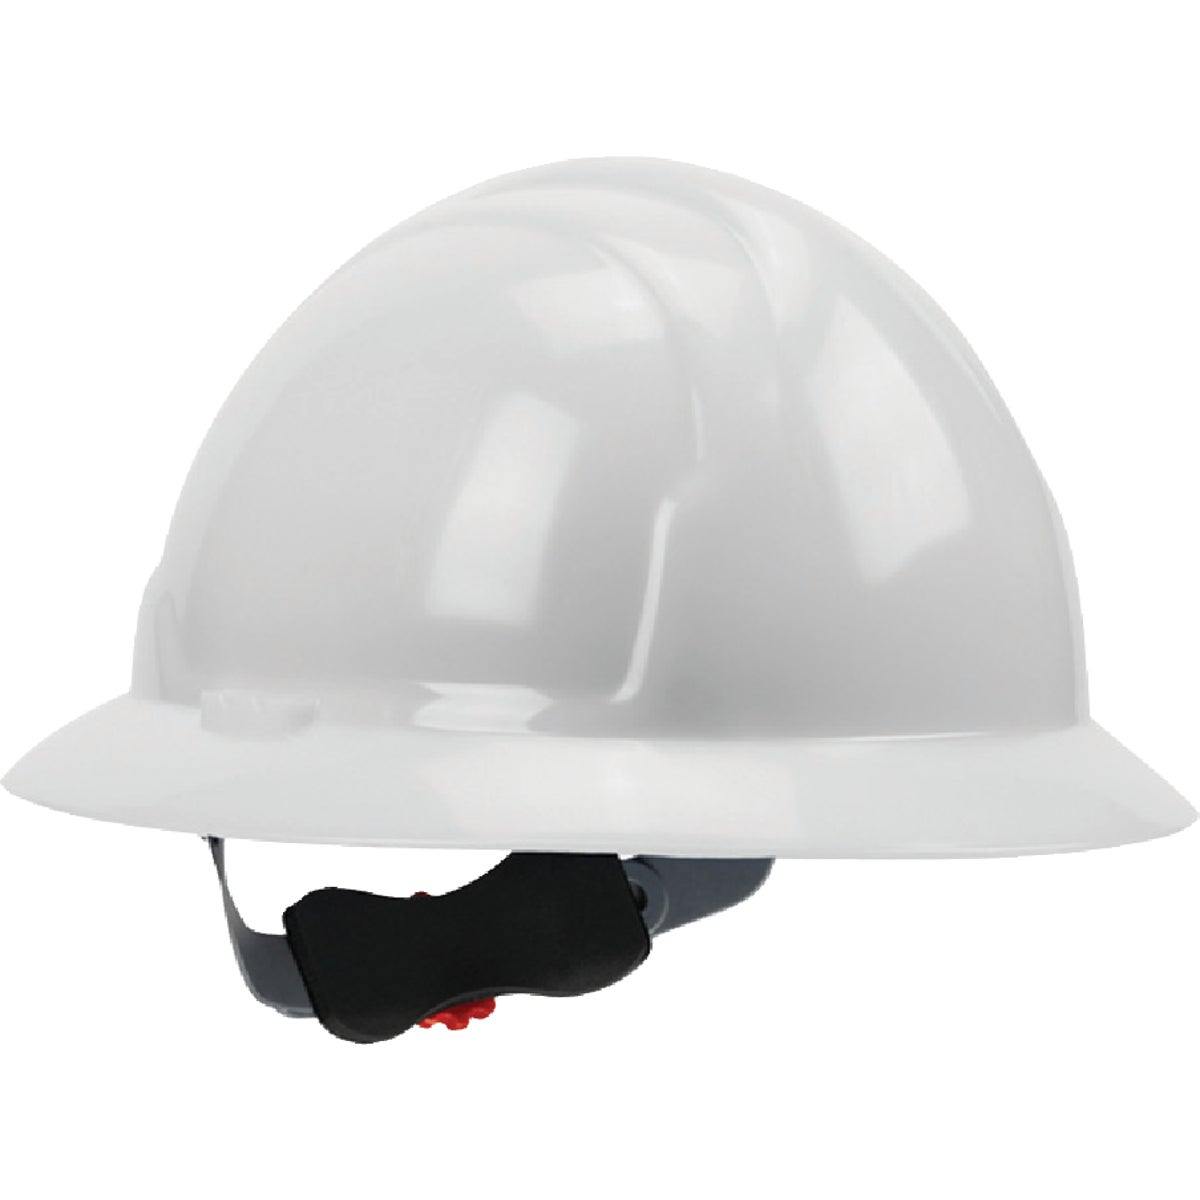 WHT FULL BRIM HARD HAT - 10006318 by Msa Safety